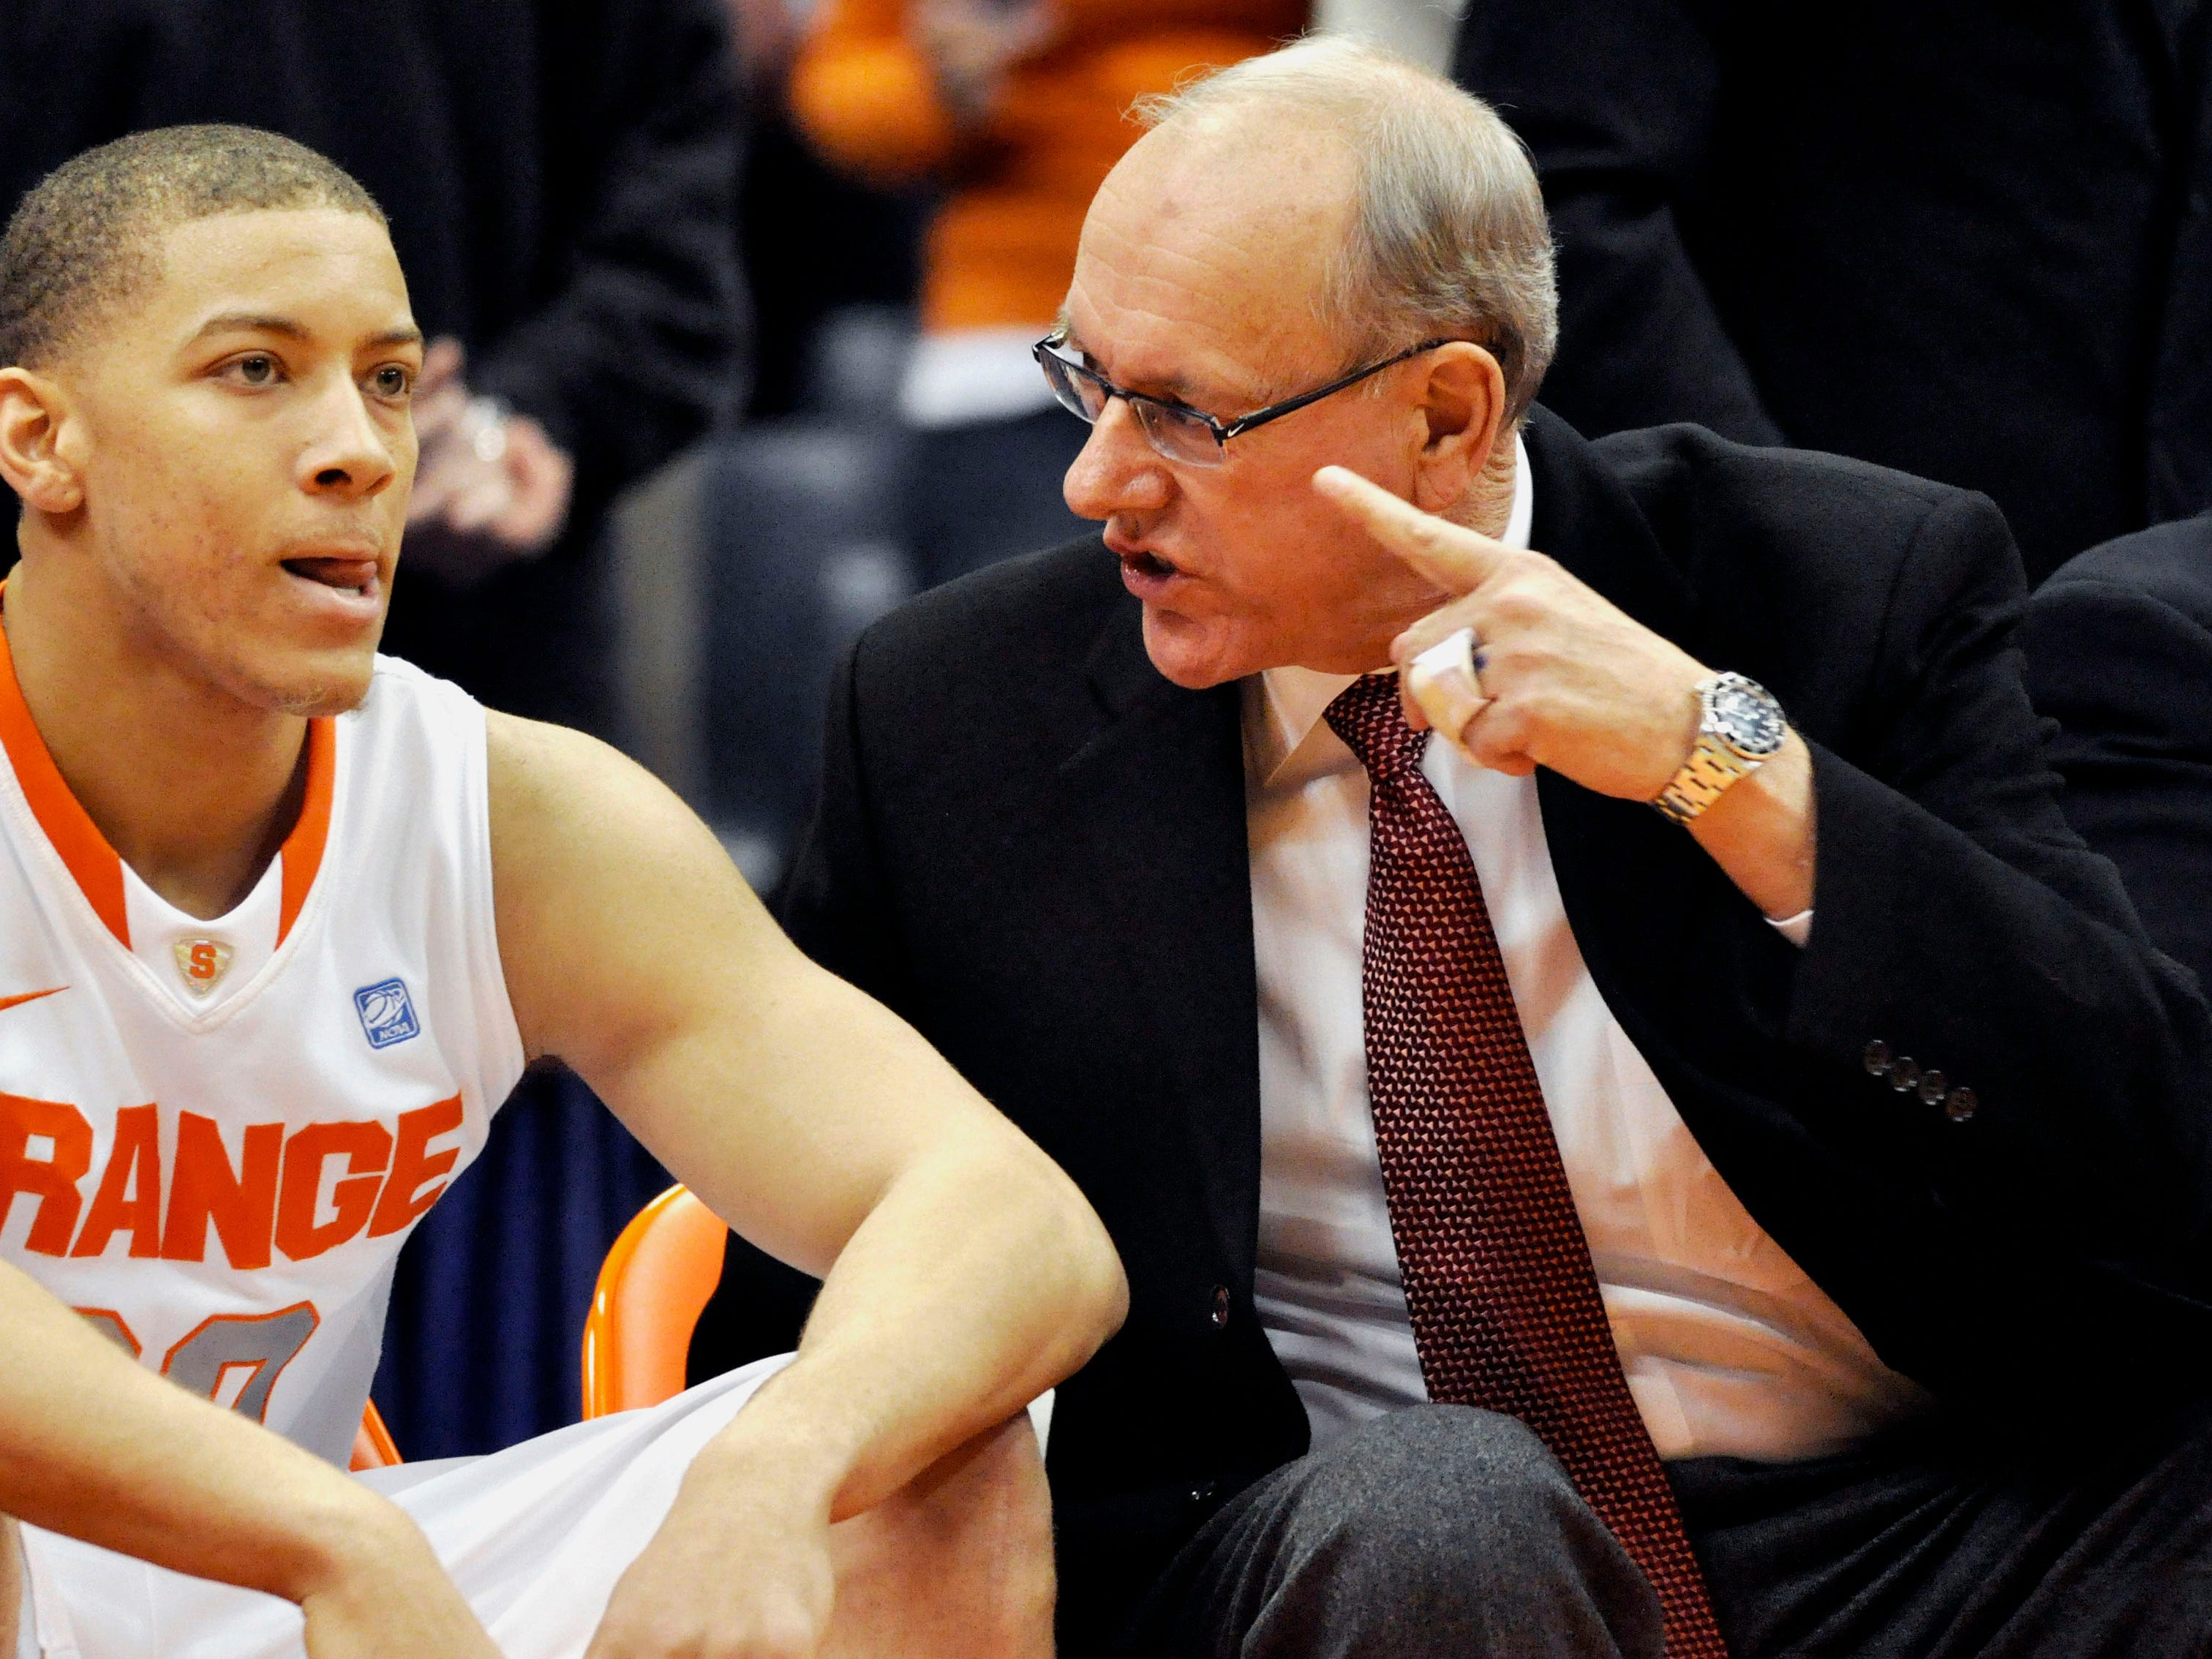 2010: Syracuse head coach Jim Boeheim, right, talks to Brandon Triche during the first half against Drexel in an NCAA college basketball game in Syracuse, N.Y., Wednesday, Dec. 22, 2010. Syracuse won 93-65. (AP Photo/Kevin Rivoli)